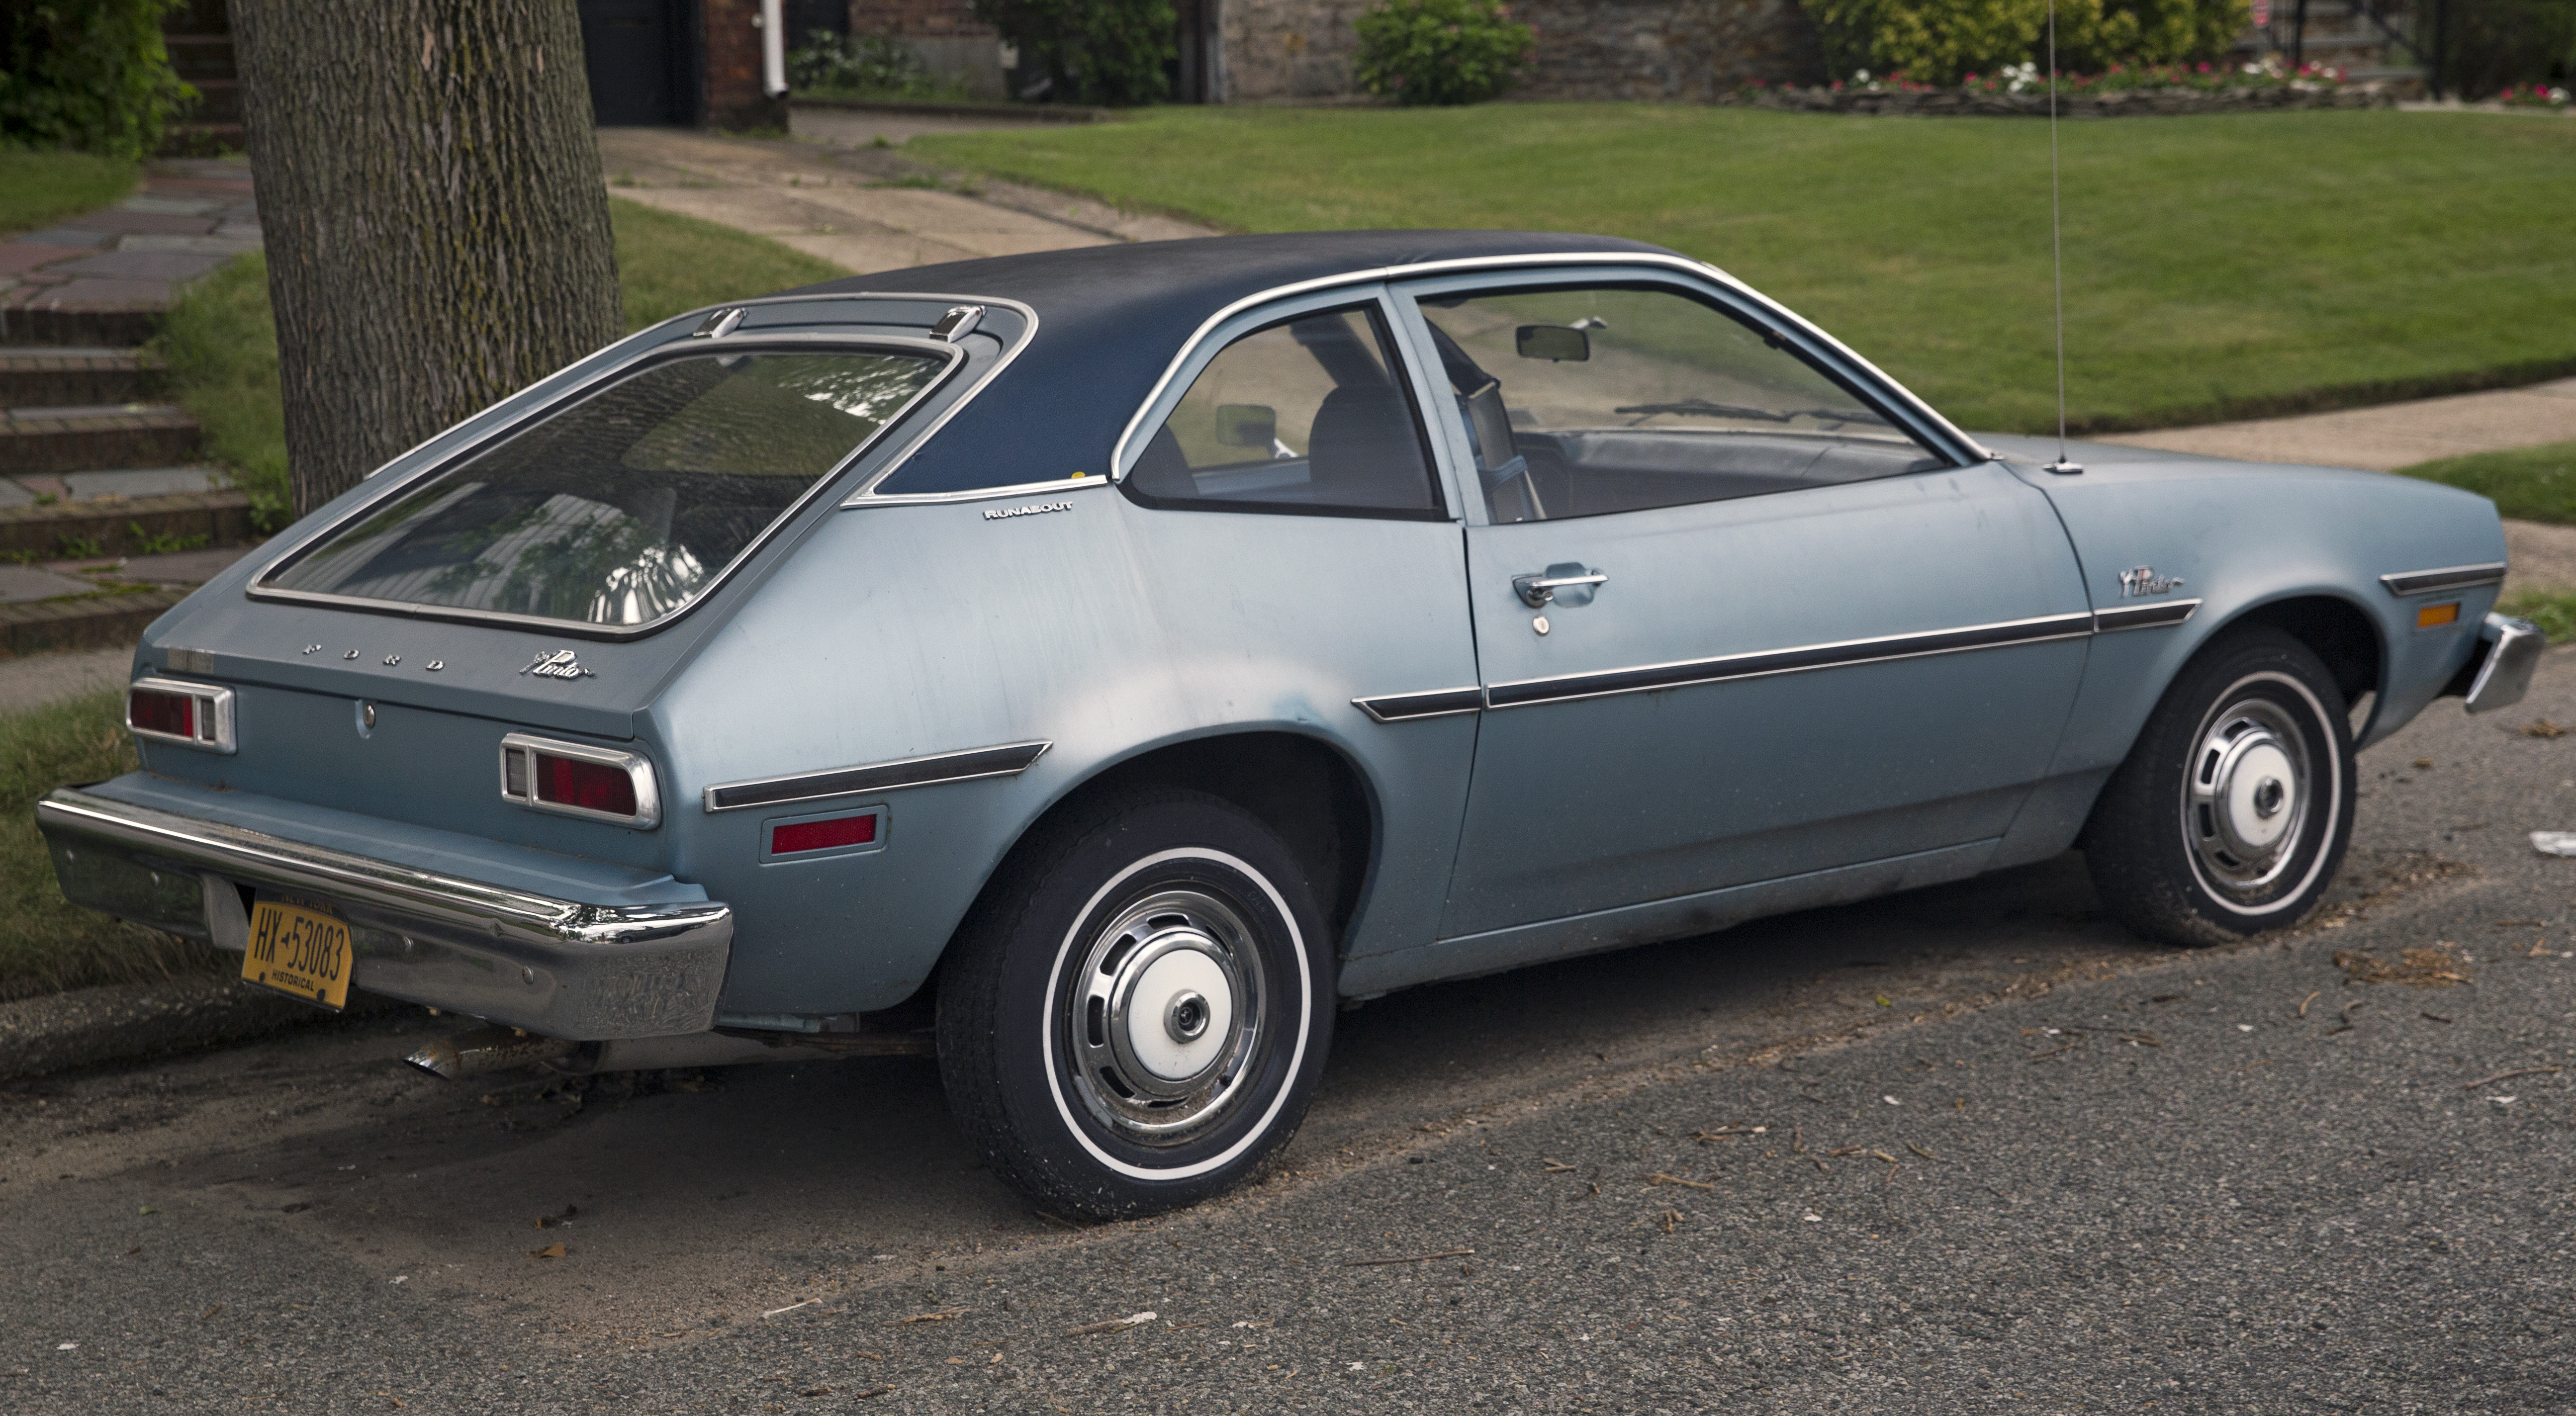 1975_Ford_Pinto_Runabout_2.8V6%2C_rear_r